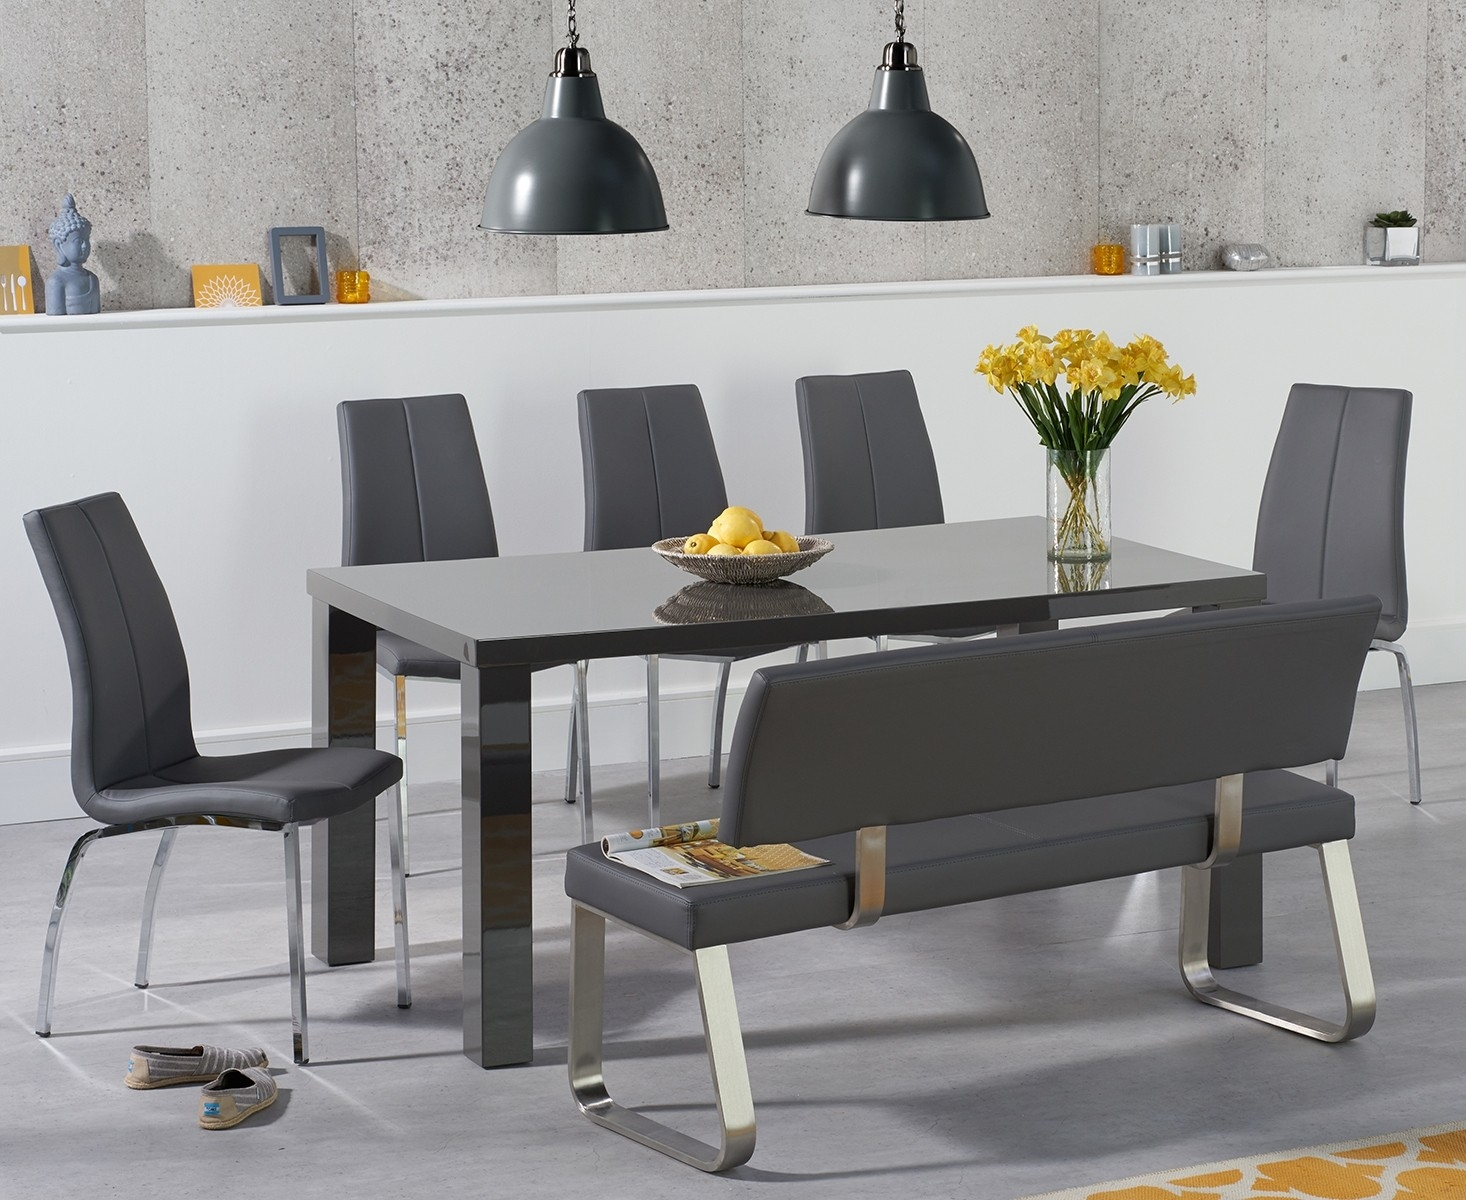 An image of Atlanta 160cm Dark Grey High Gloss Dining Table with Cavello Chairs and Malaga G...